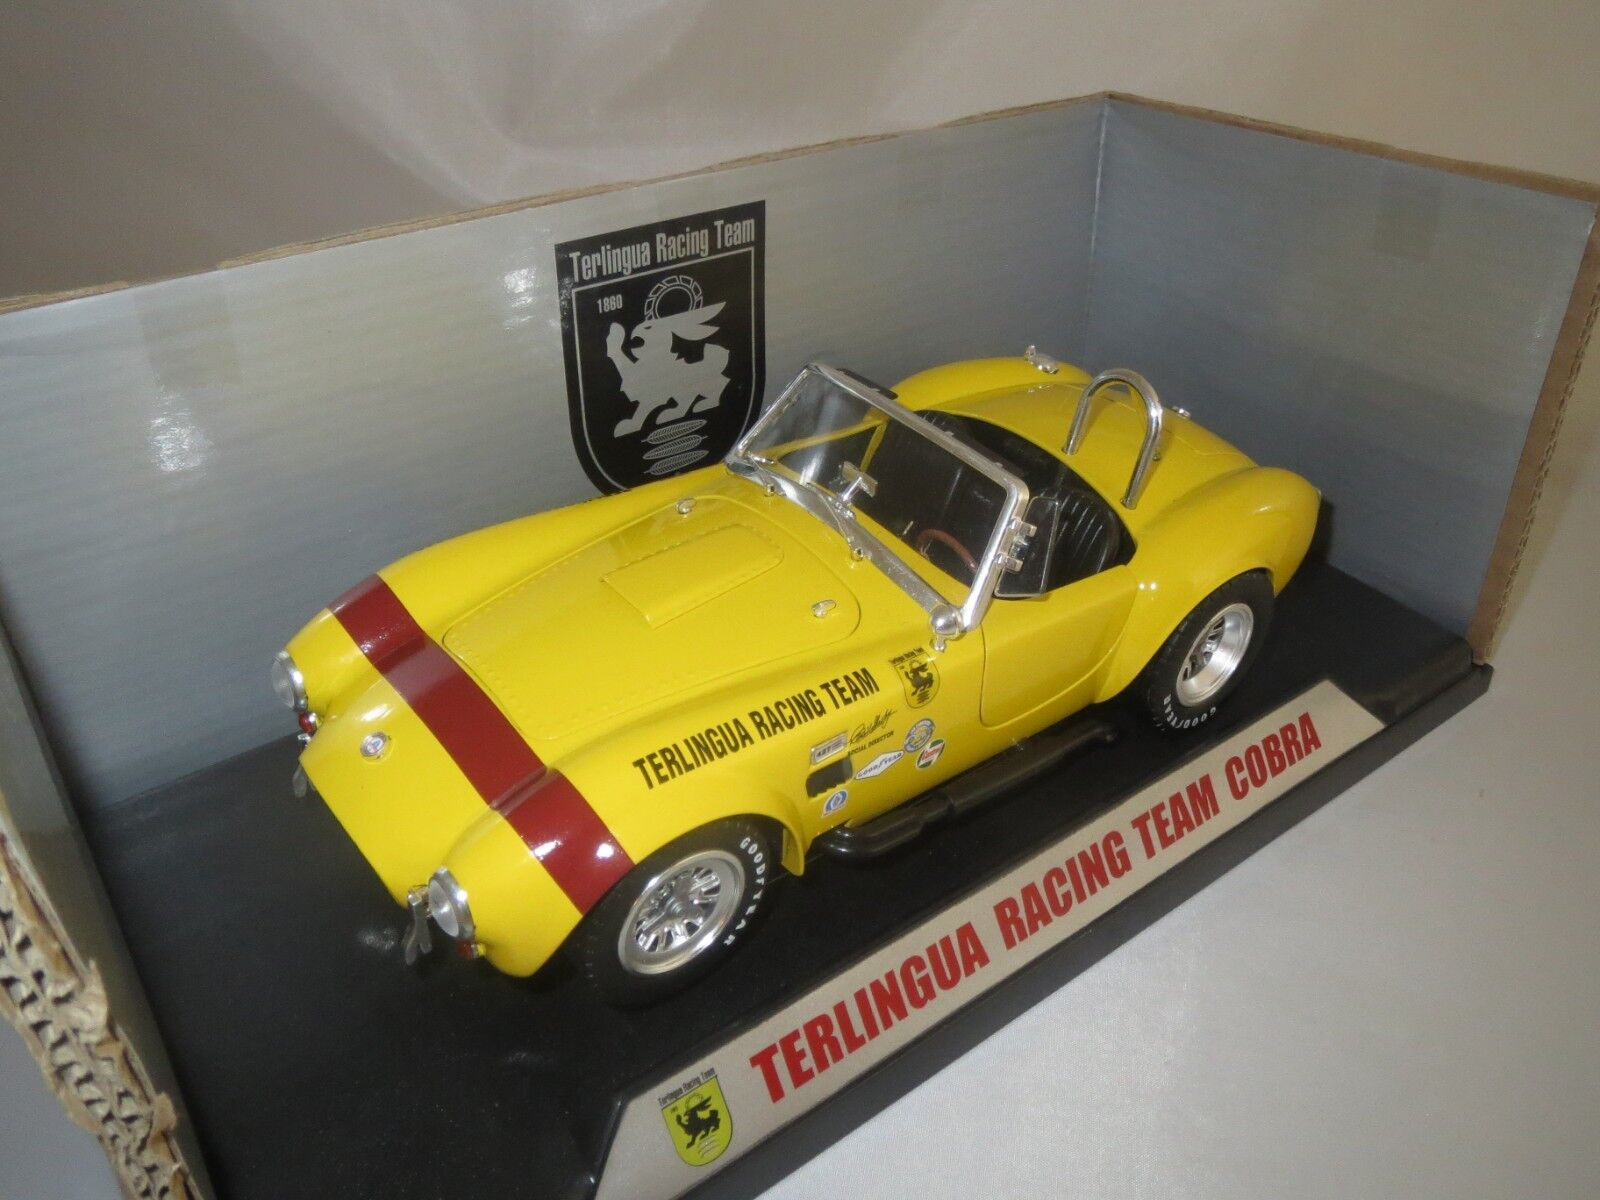 Shelby Collectibles Terlingua Racing Team Cobra (giallo) 1 18 OVP